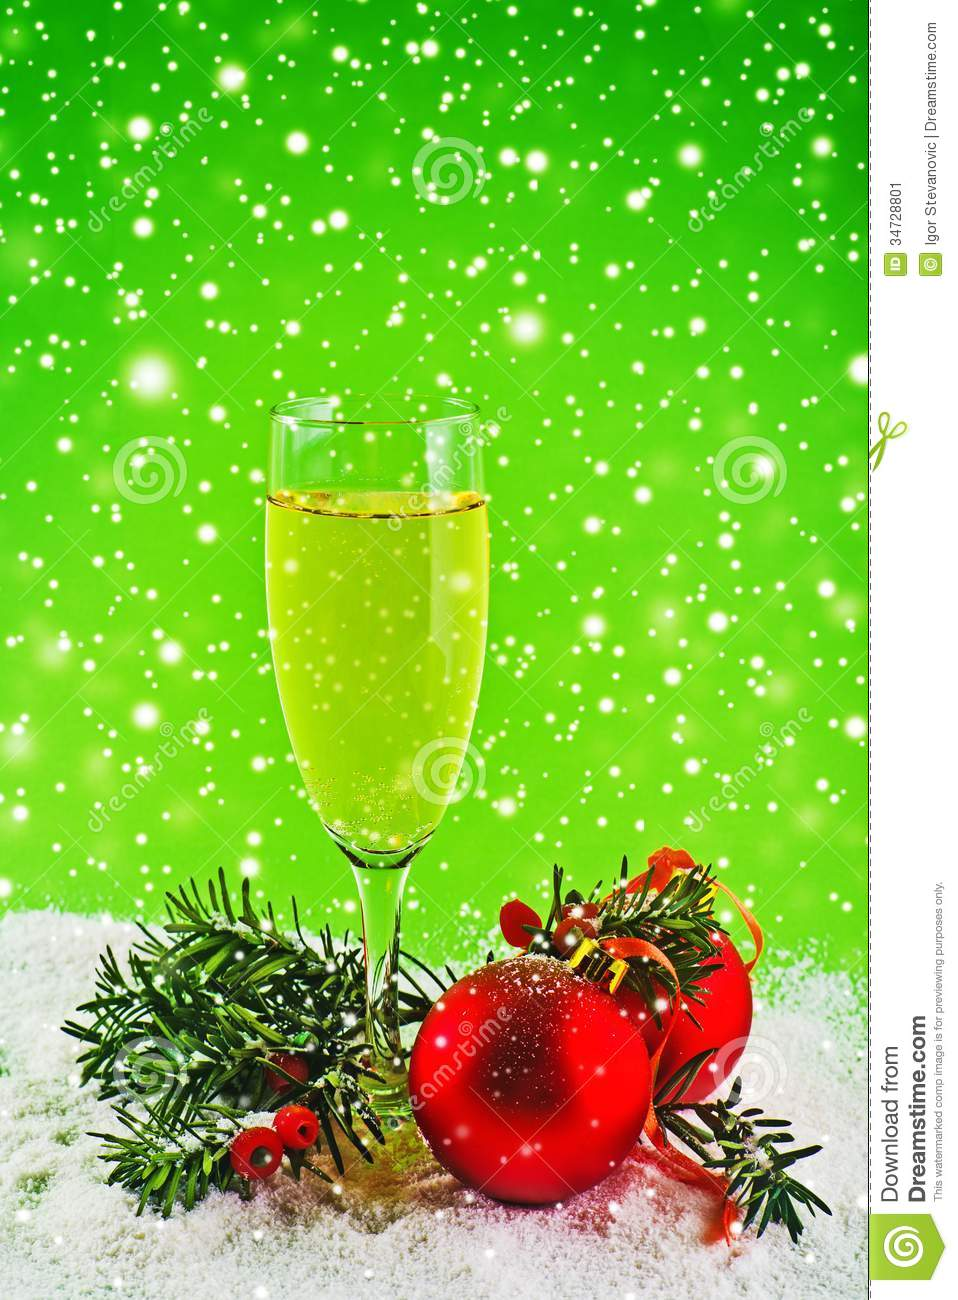 ... Year card. White wine and christmas balls. New Year's Eve decoration: dreamstime.com/stock-image-happy-new-year-white-wine-christmas...